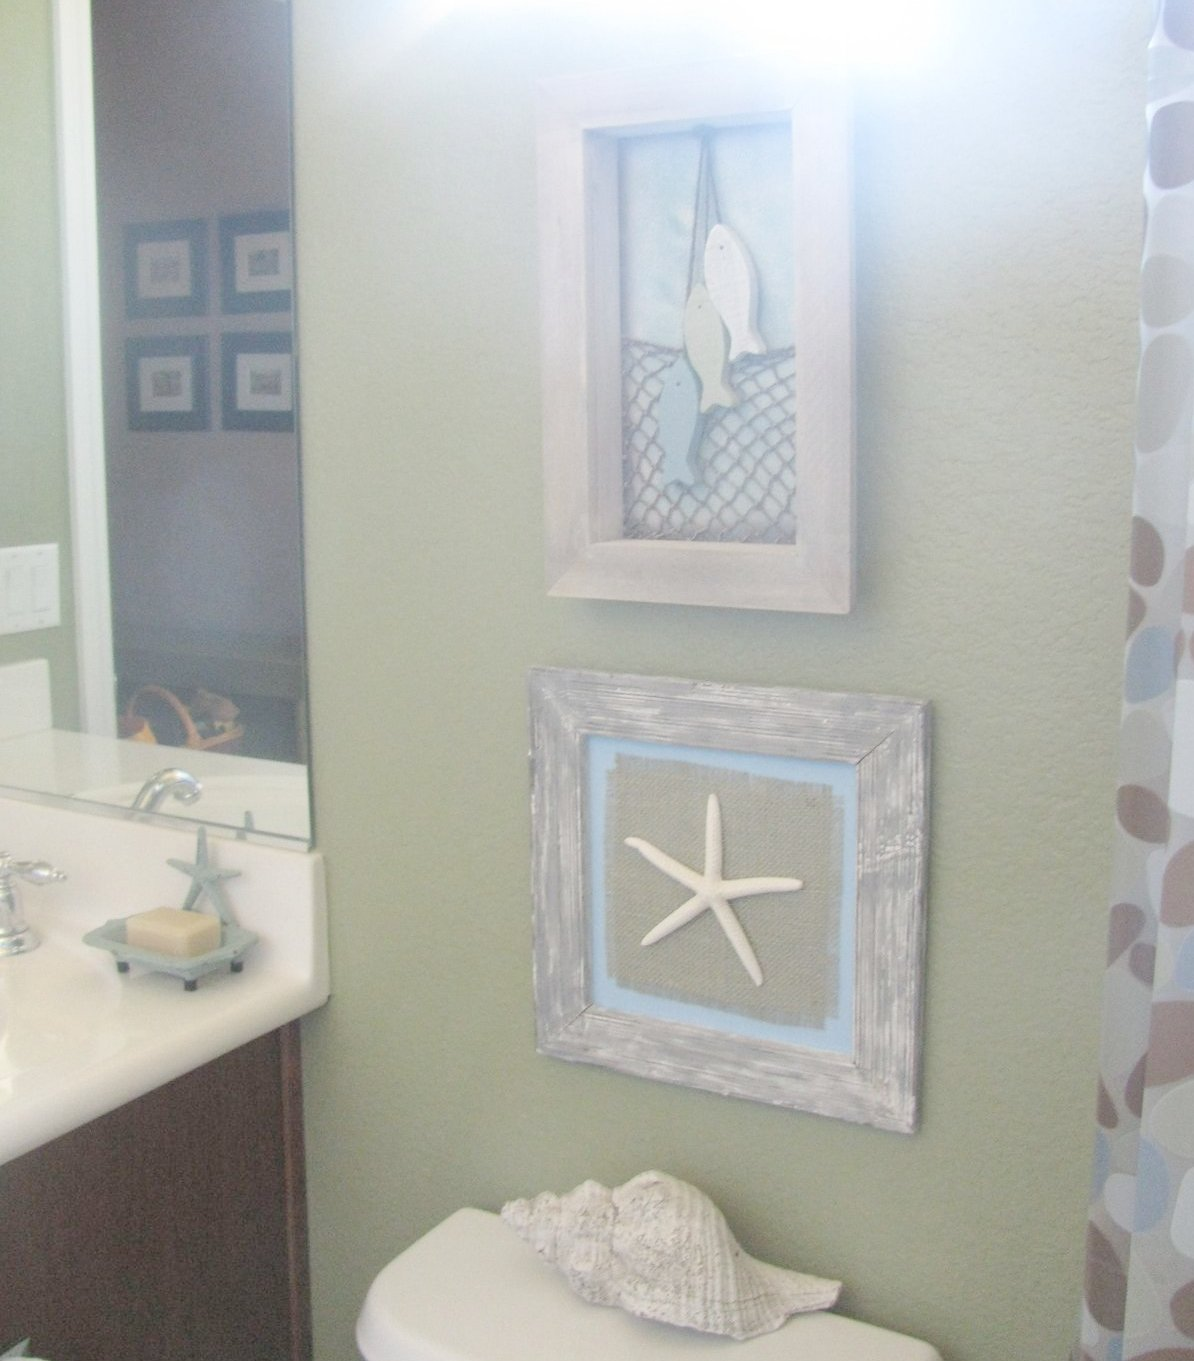 Amazing Beach Themed Bathroom Decoration The Reason This Photo Is All Blurry At The Top Is There Is A Square